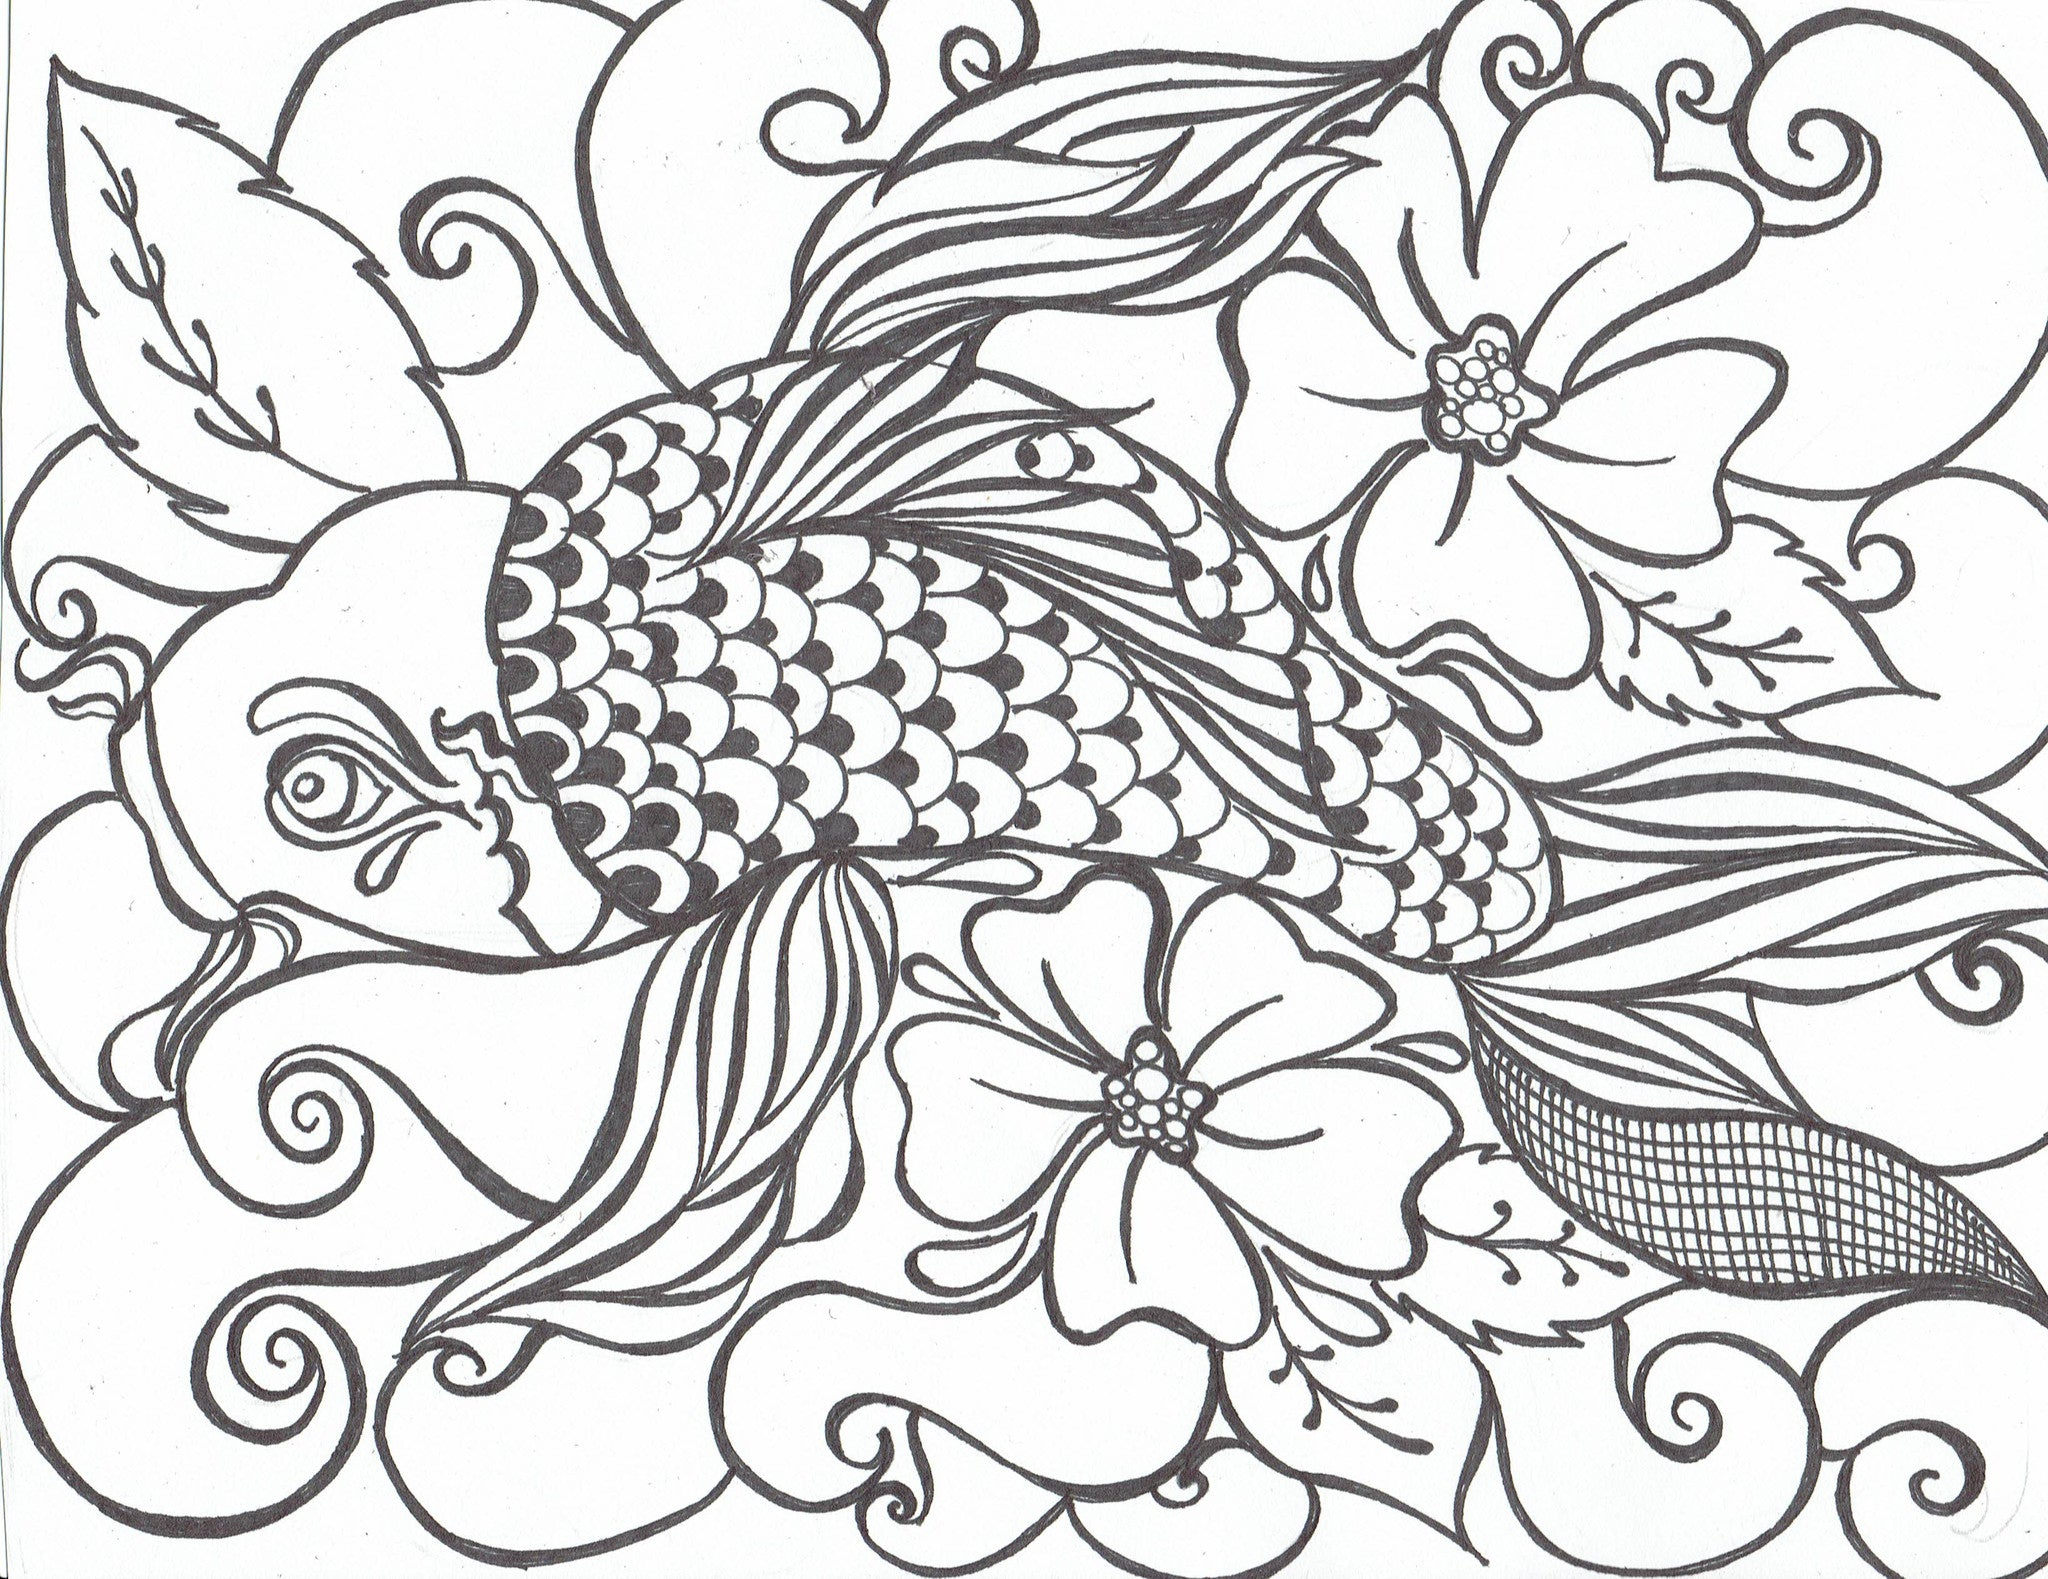 Koi Fish with Flowers - You-Color